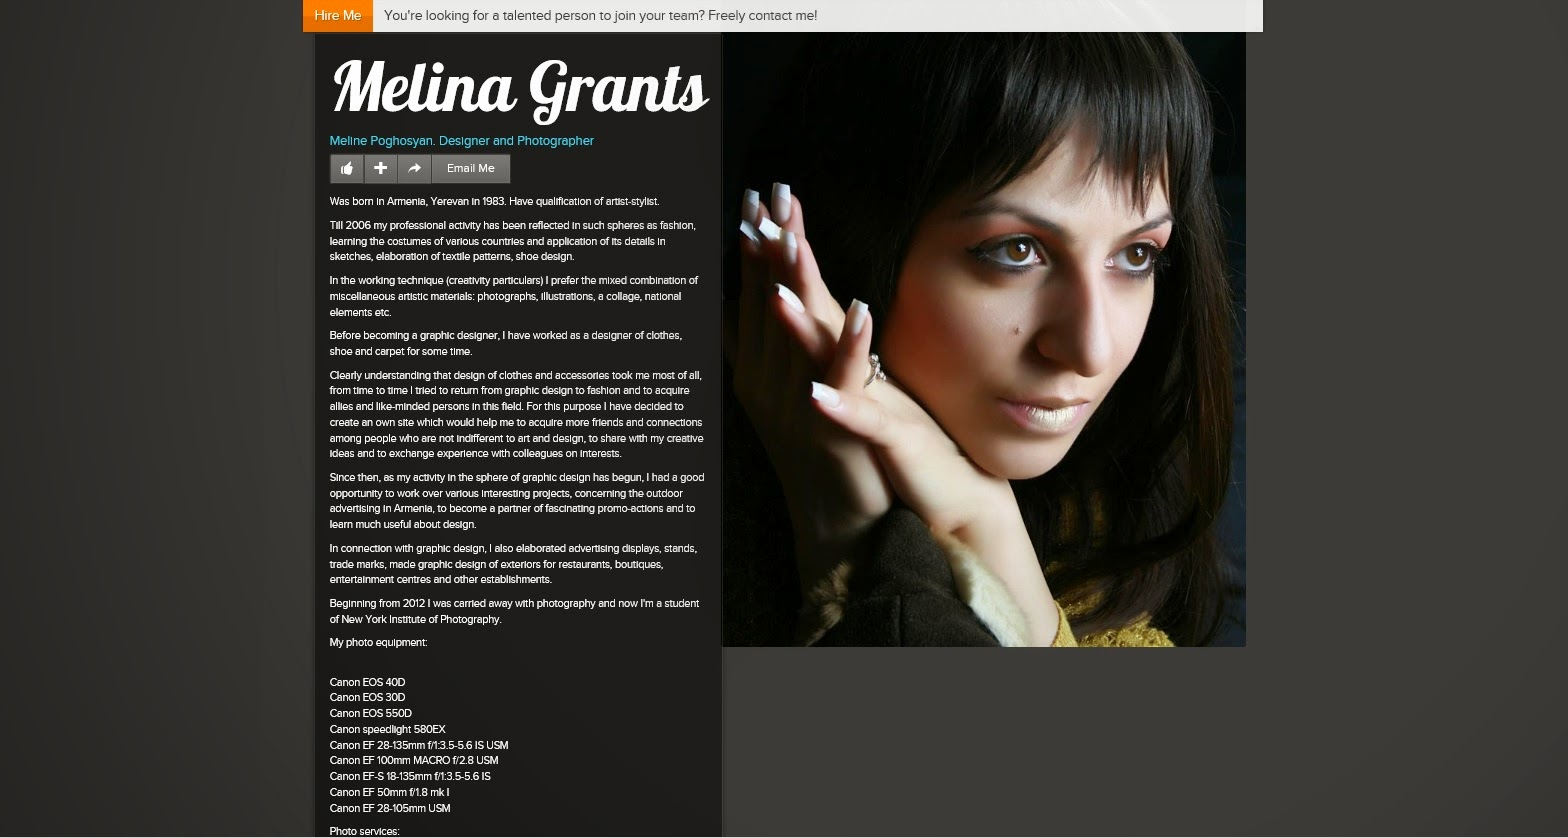 An image of Melina Grants, Photographer & Designer